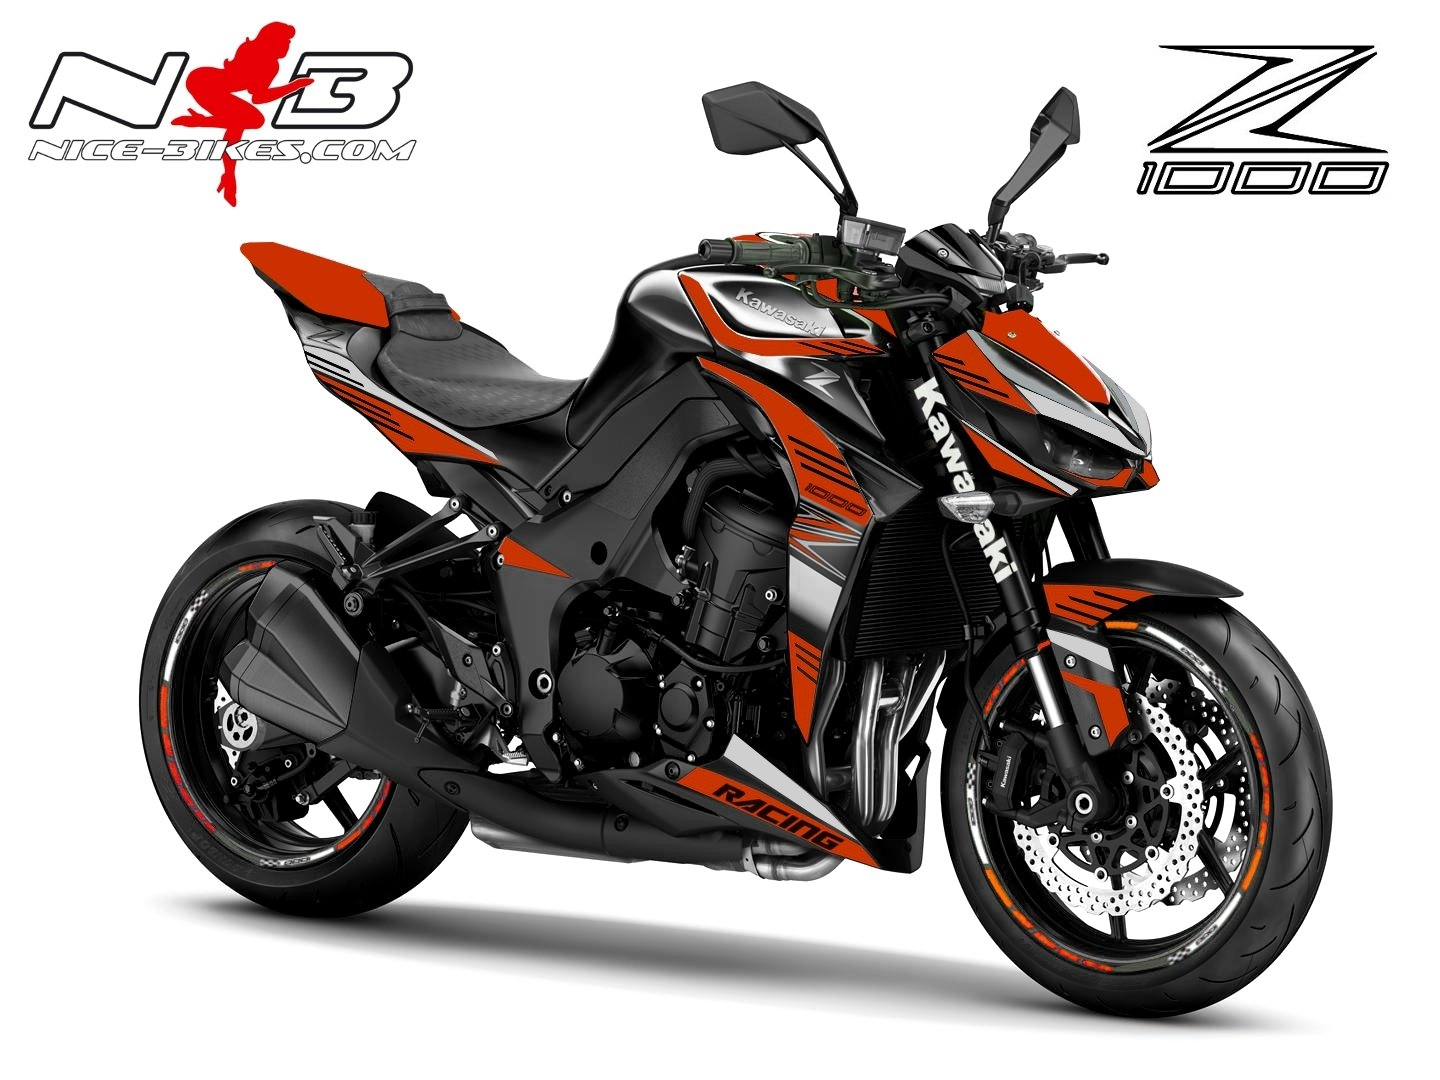 Z1000 Foliendekor orange / alu gebürstet